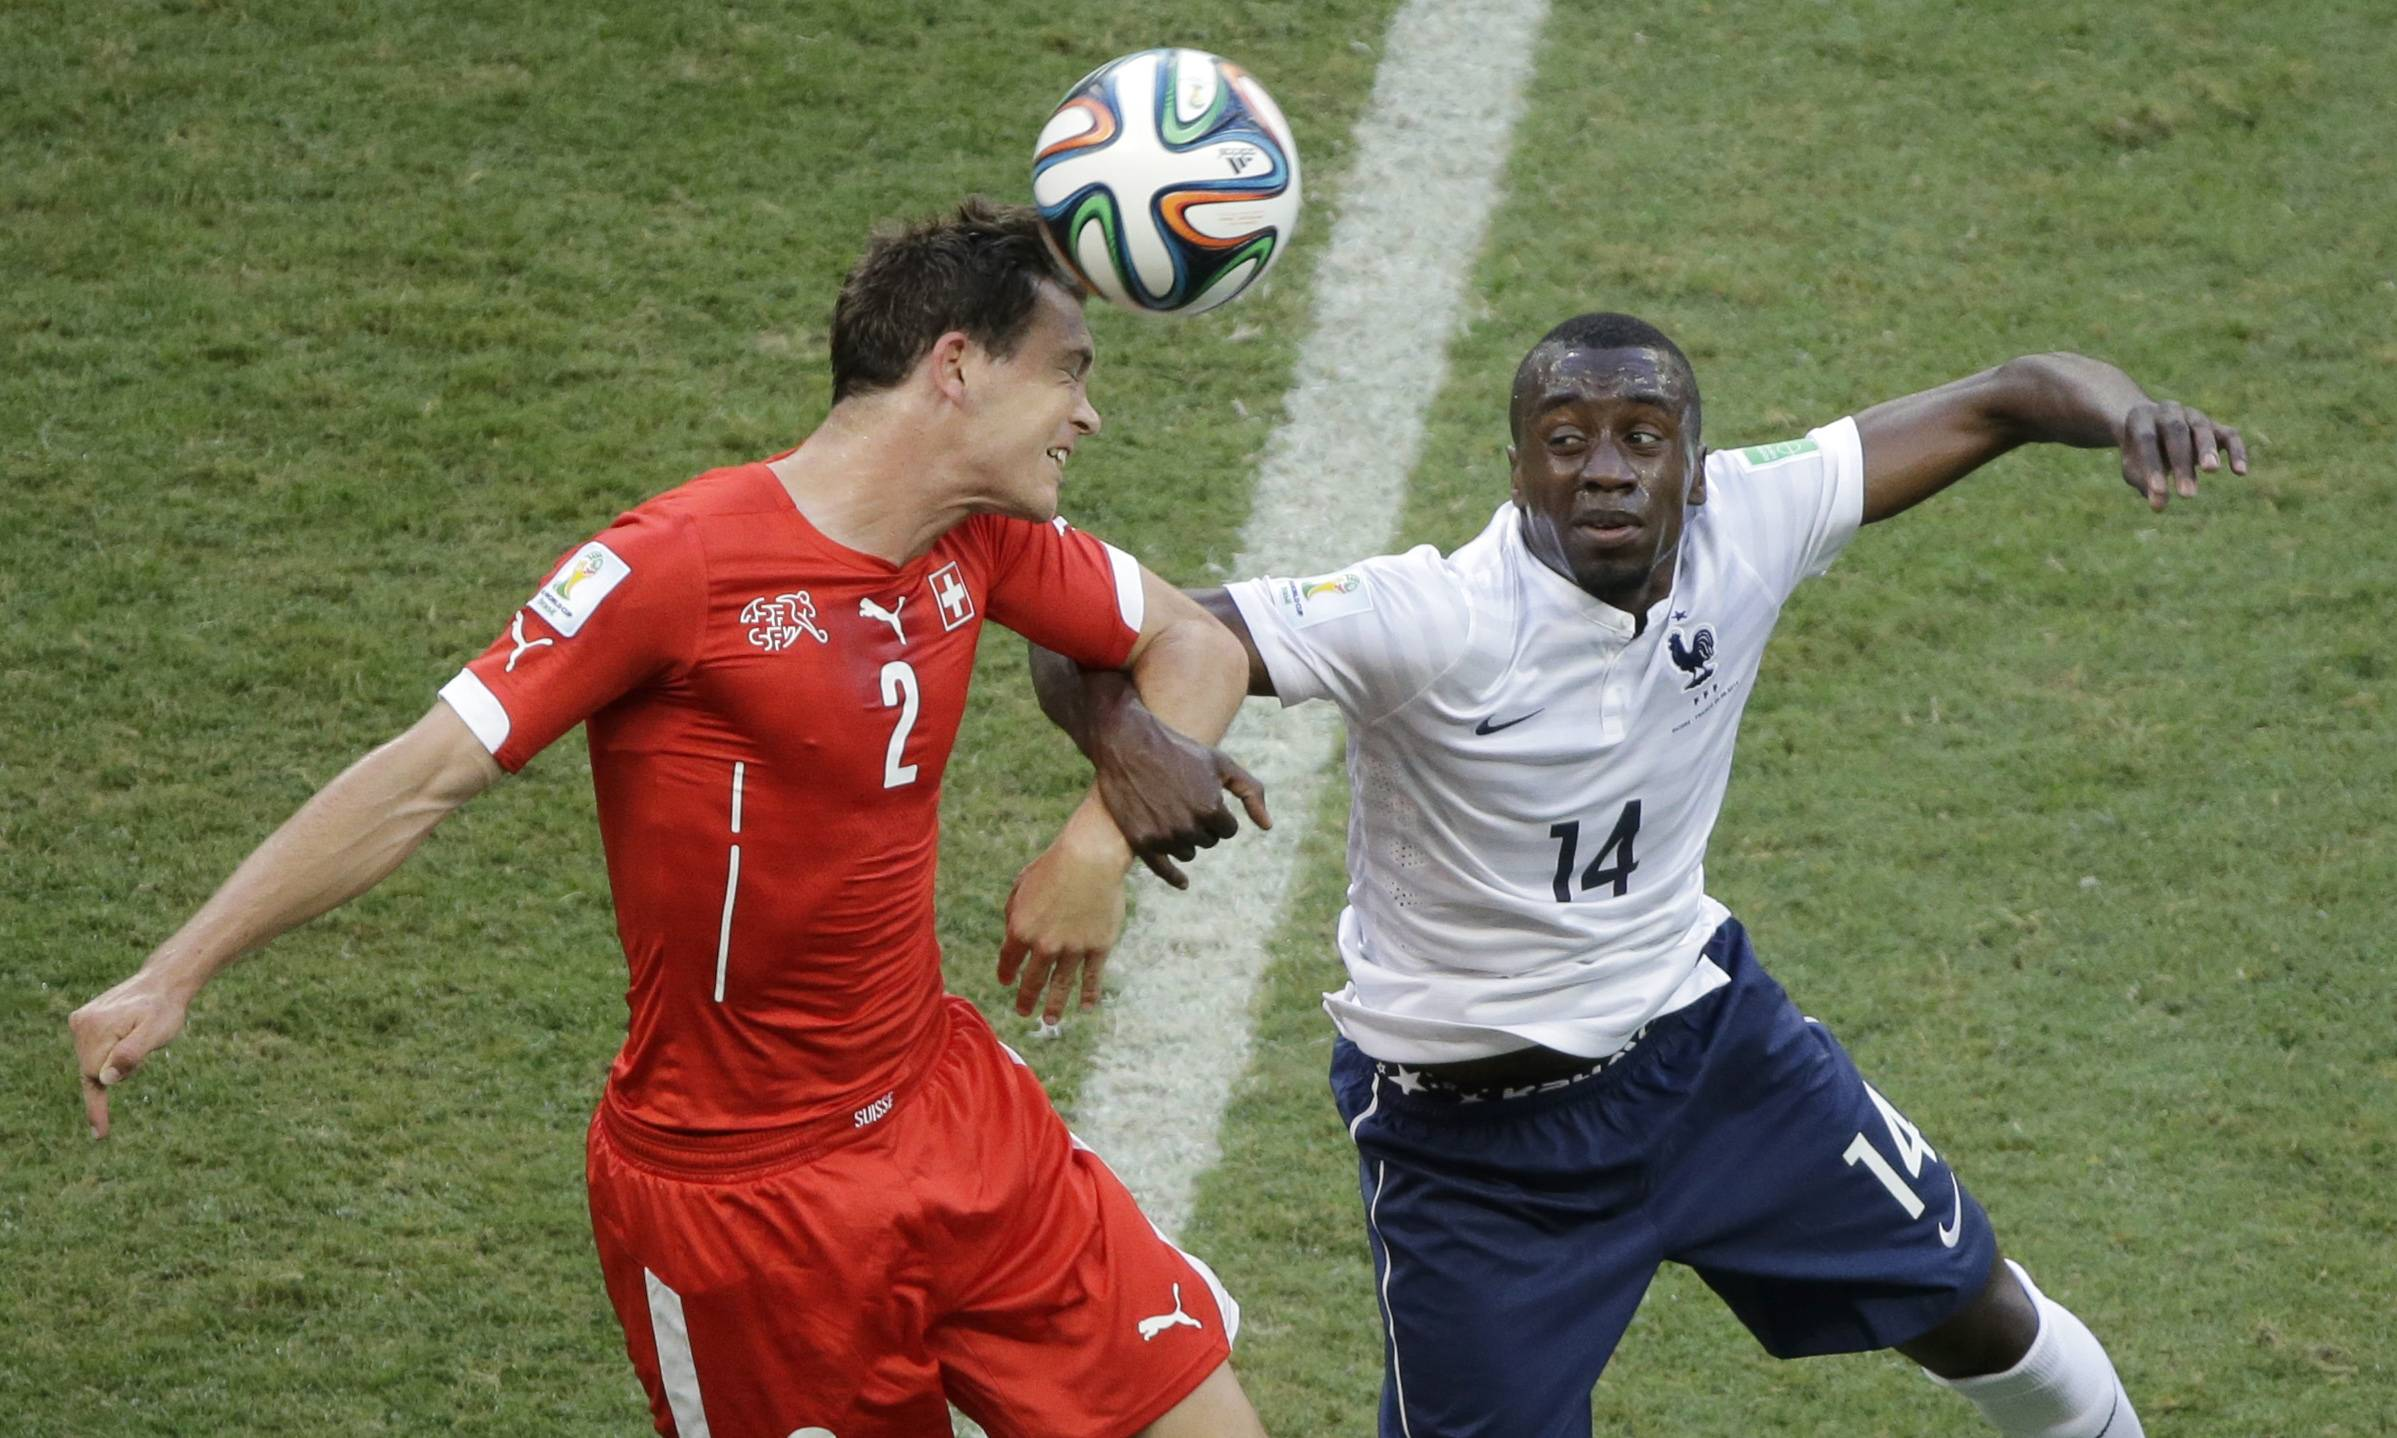 Switzerland's Stephan Lichtsteiner, left, and France's Blaise Matuidi go for a header during the group E World Cup soccer match between Switzerland and France at the Arena Fonte Nova in Salvador, Brazil, Friday, June 20, 2014.